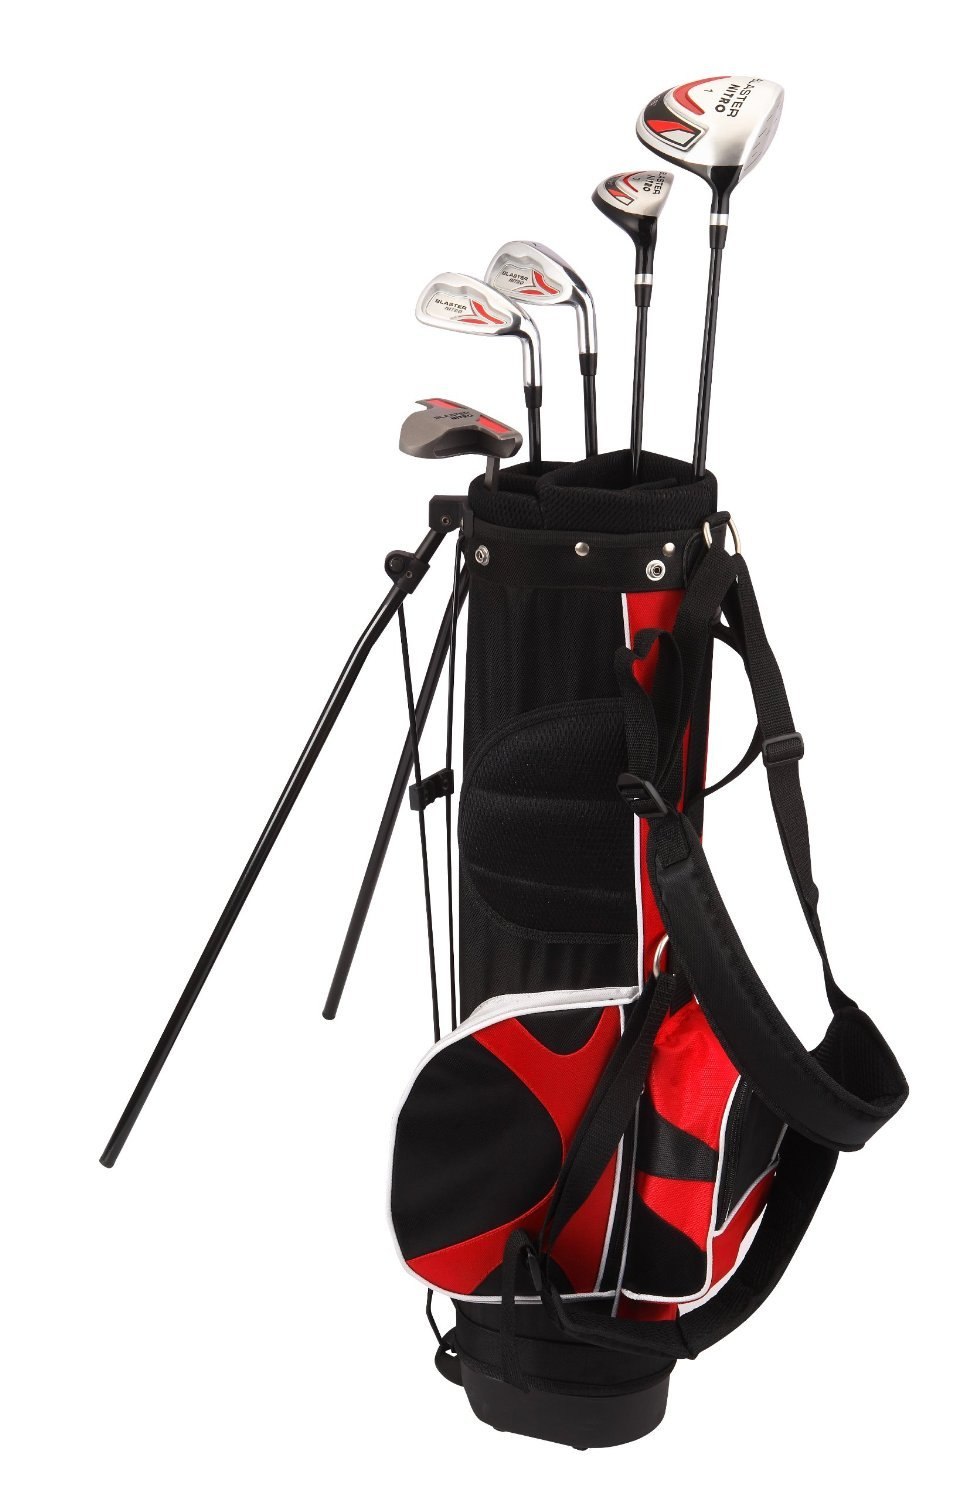 Nitro Blaster Kid's Golf Club Set, 31 Inch, Graphite, 15-Degree, Regular, Left Hand by Nitro (Image #1)